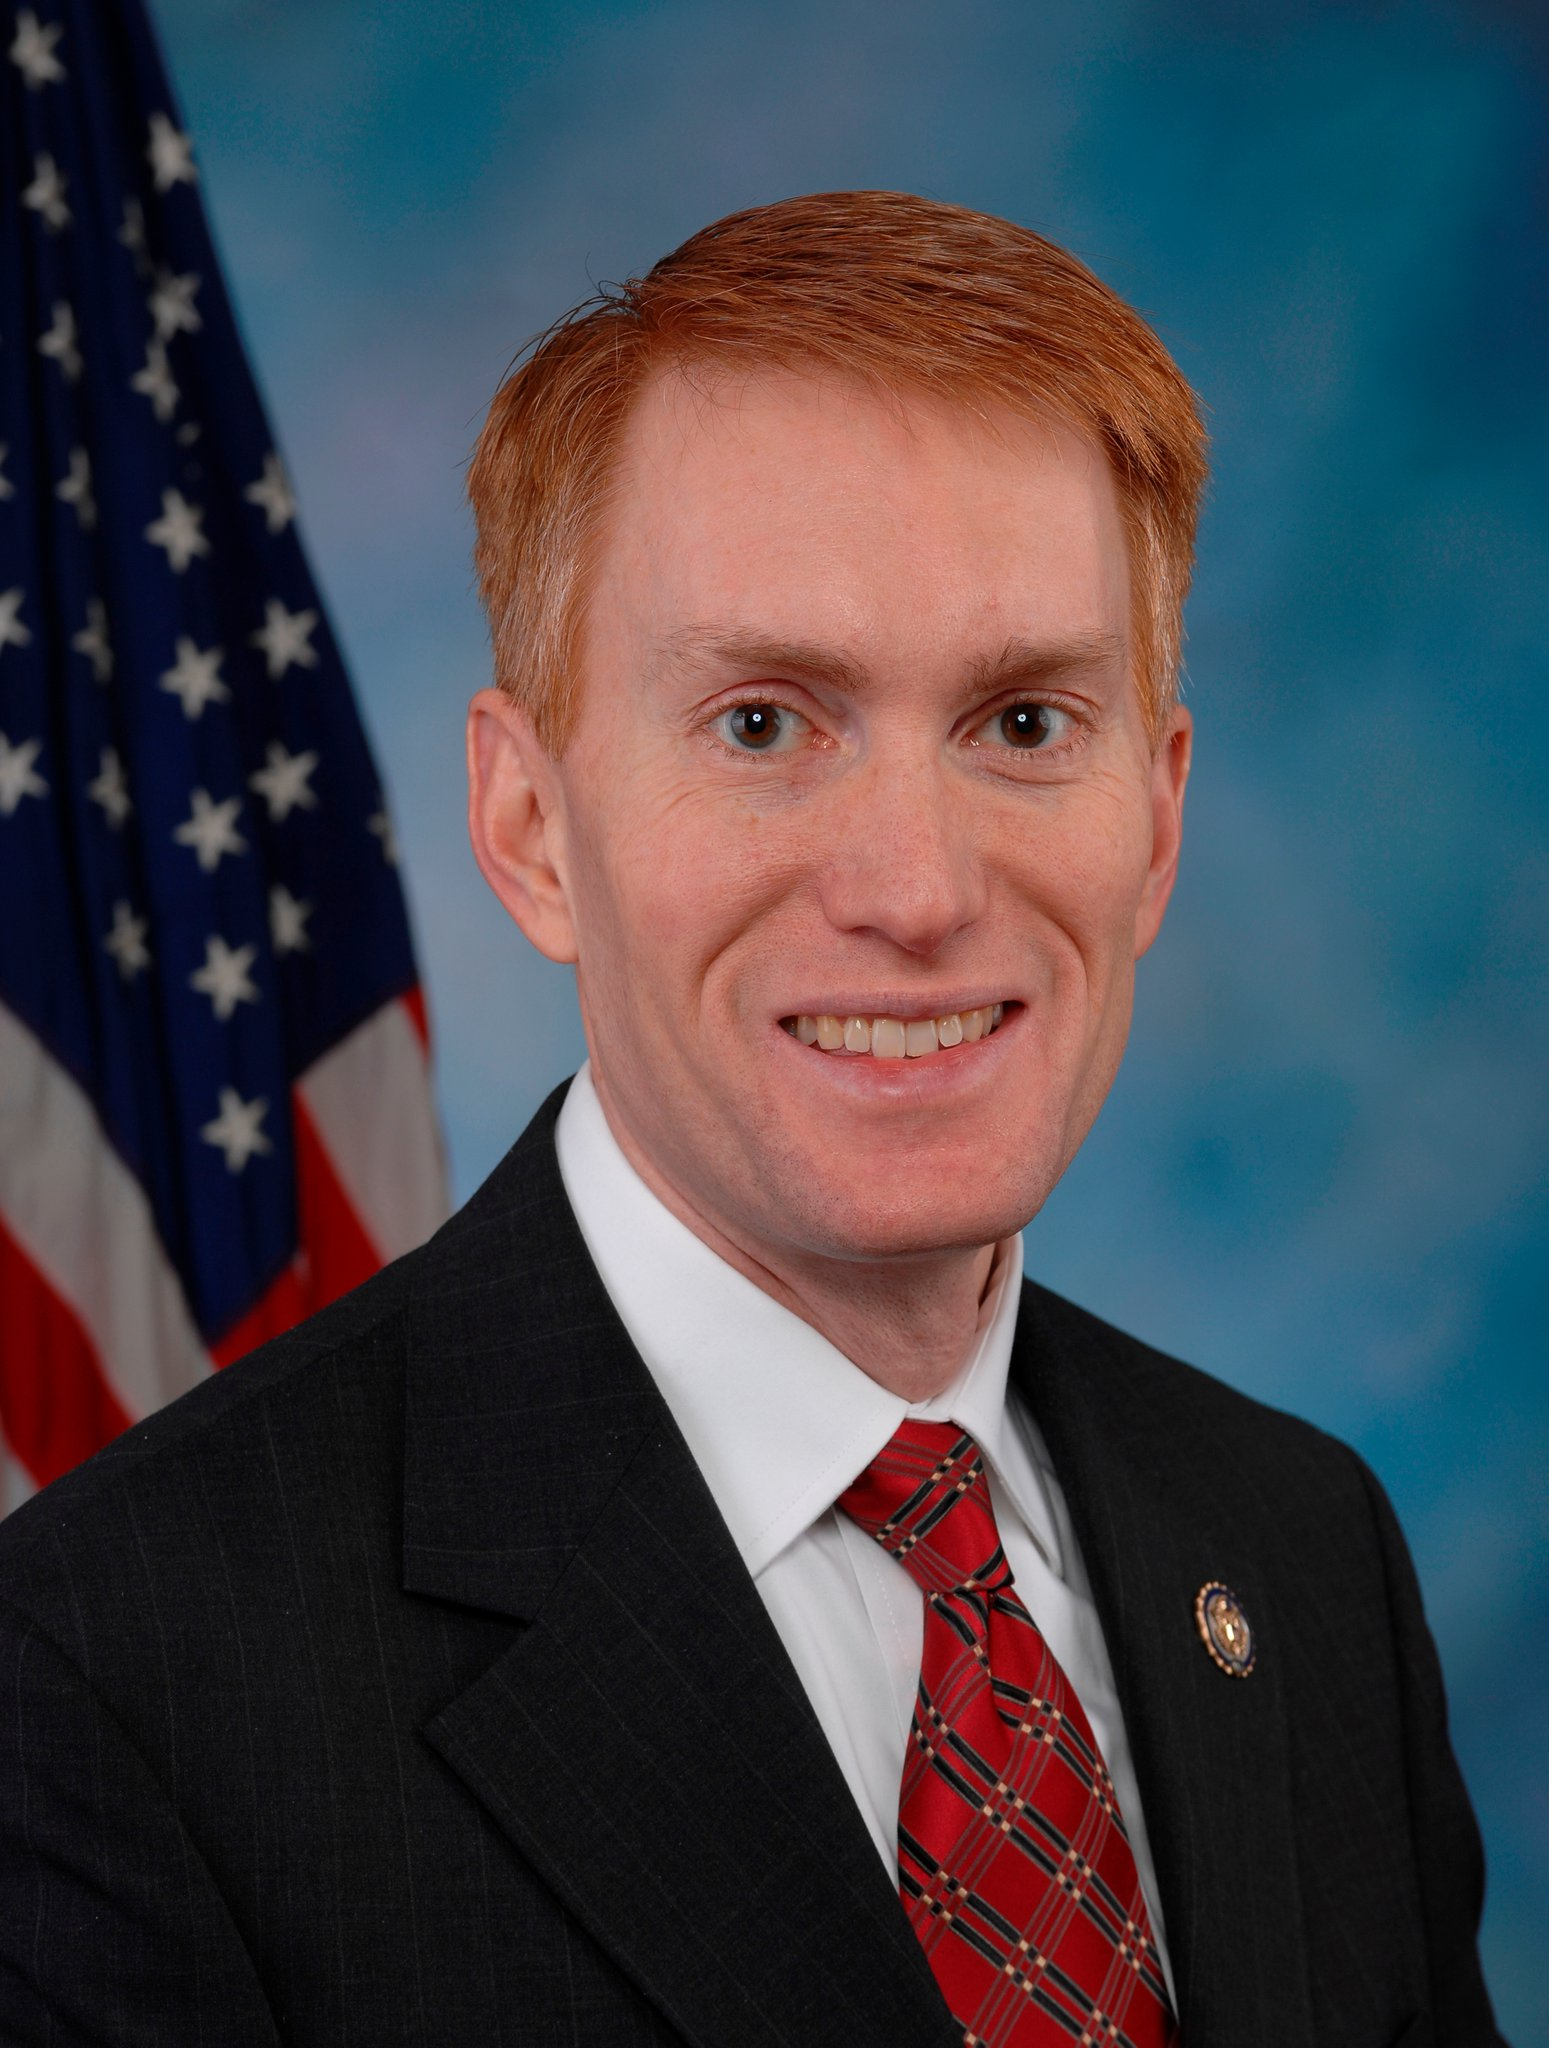 https://upload.wikimedia.org/wikipedia/commons/1/1b/James_Lankford,_Official_Portrait,_112th_Congress.jpg